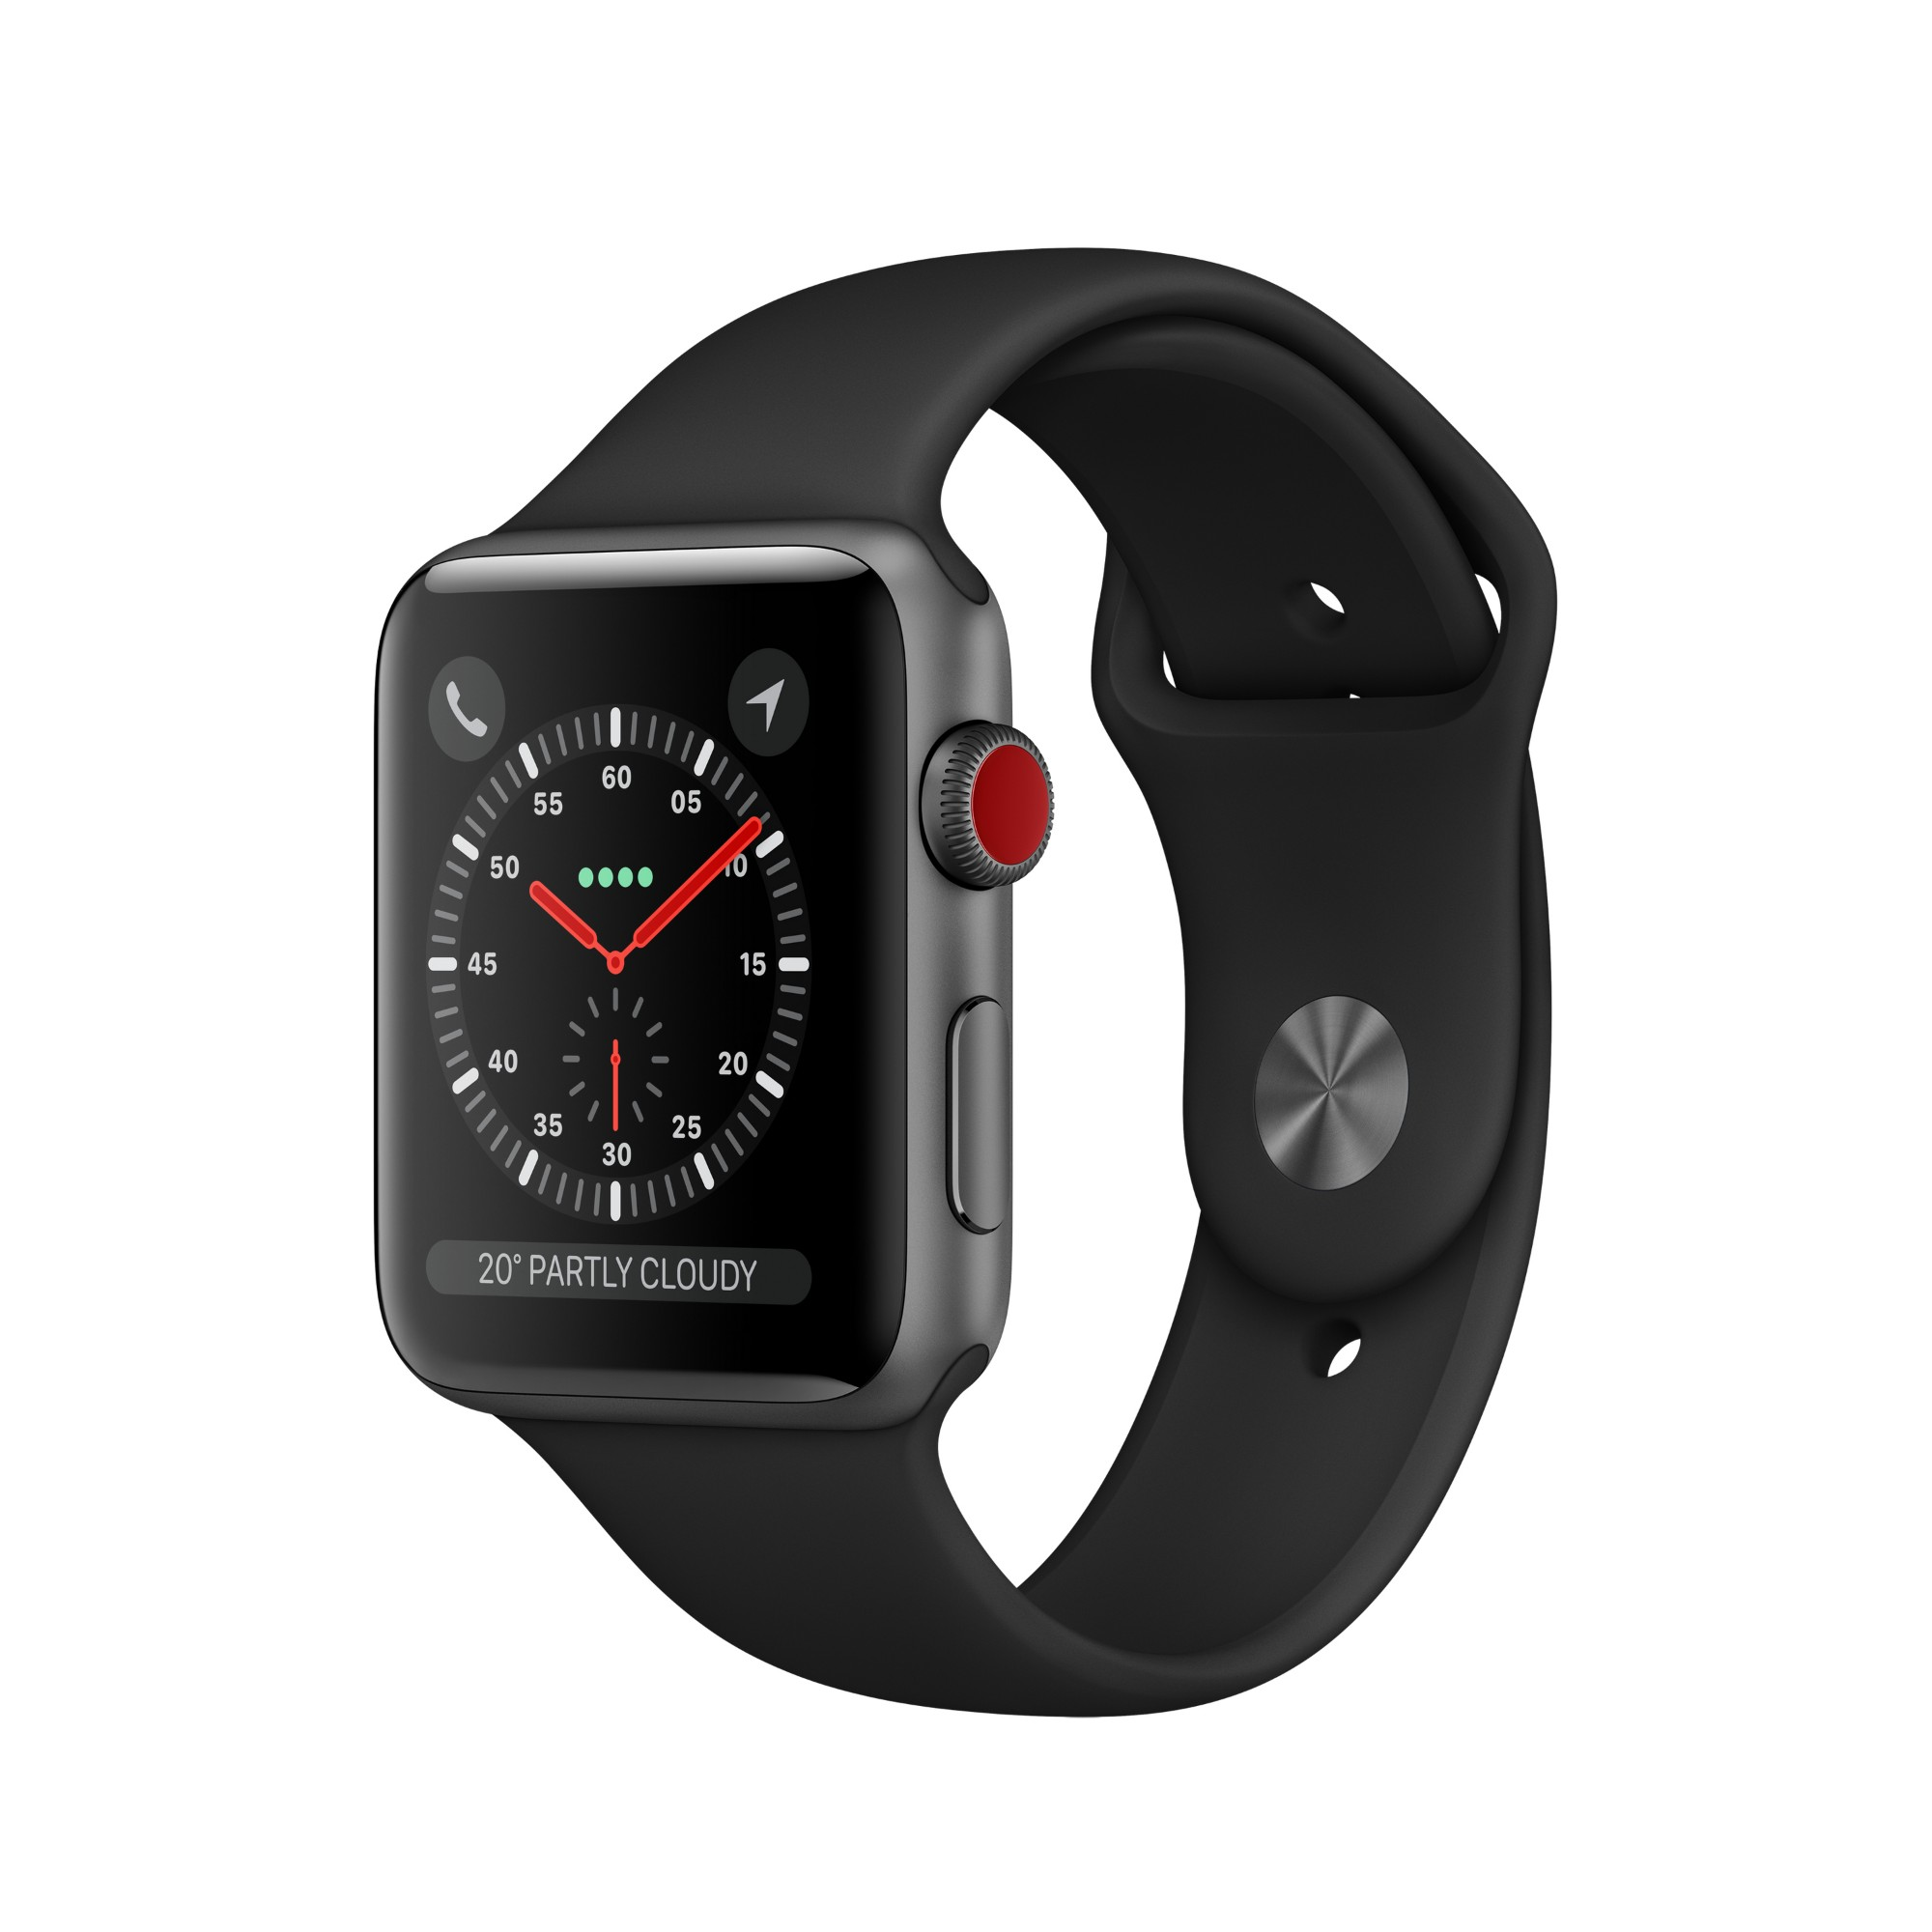 Apple Watch Series 3 smartwatch Grey OLED Cellular GPS (satellite)